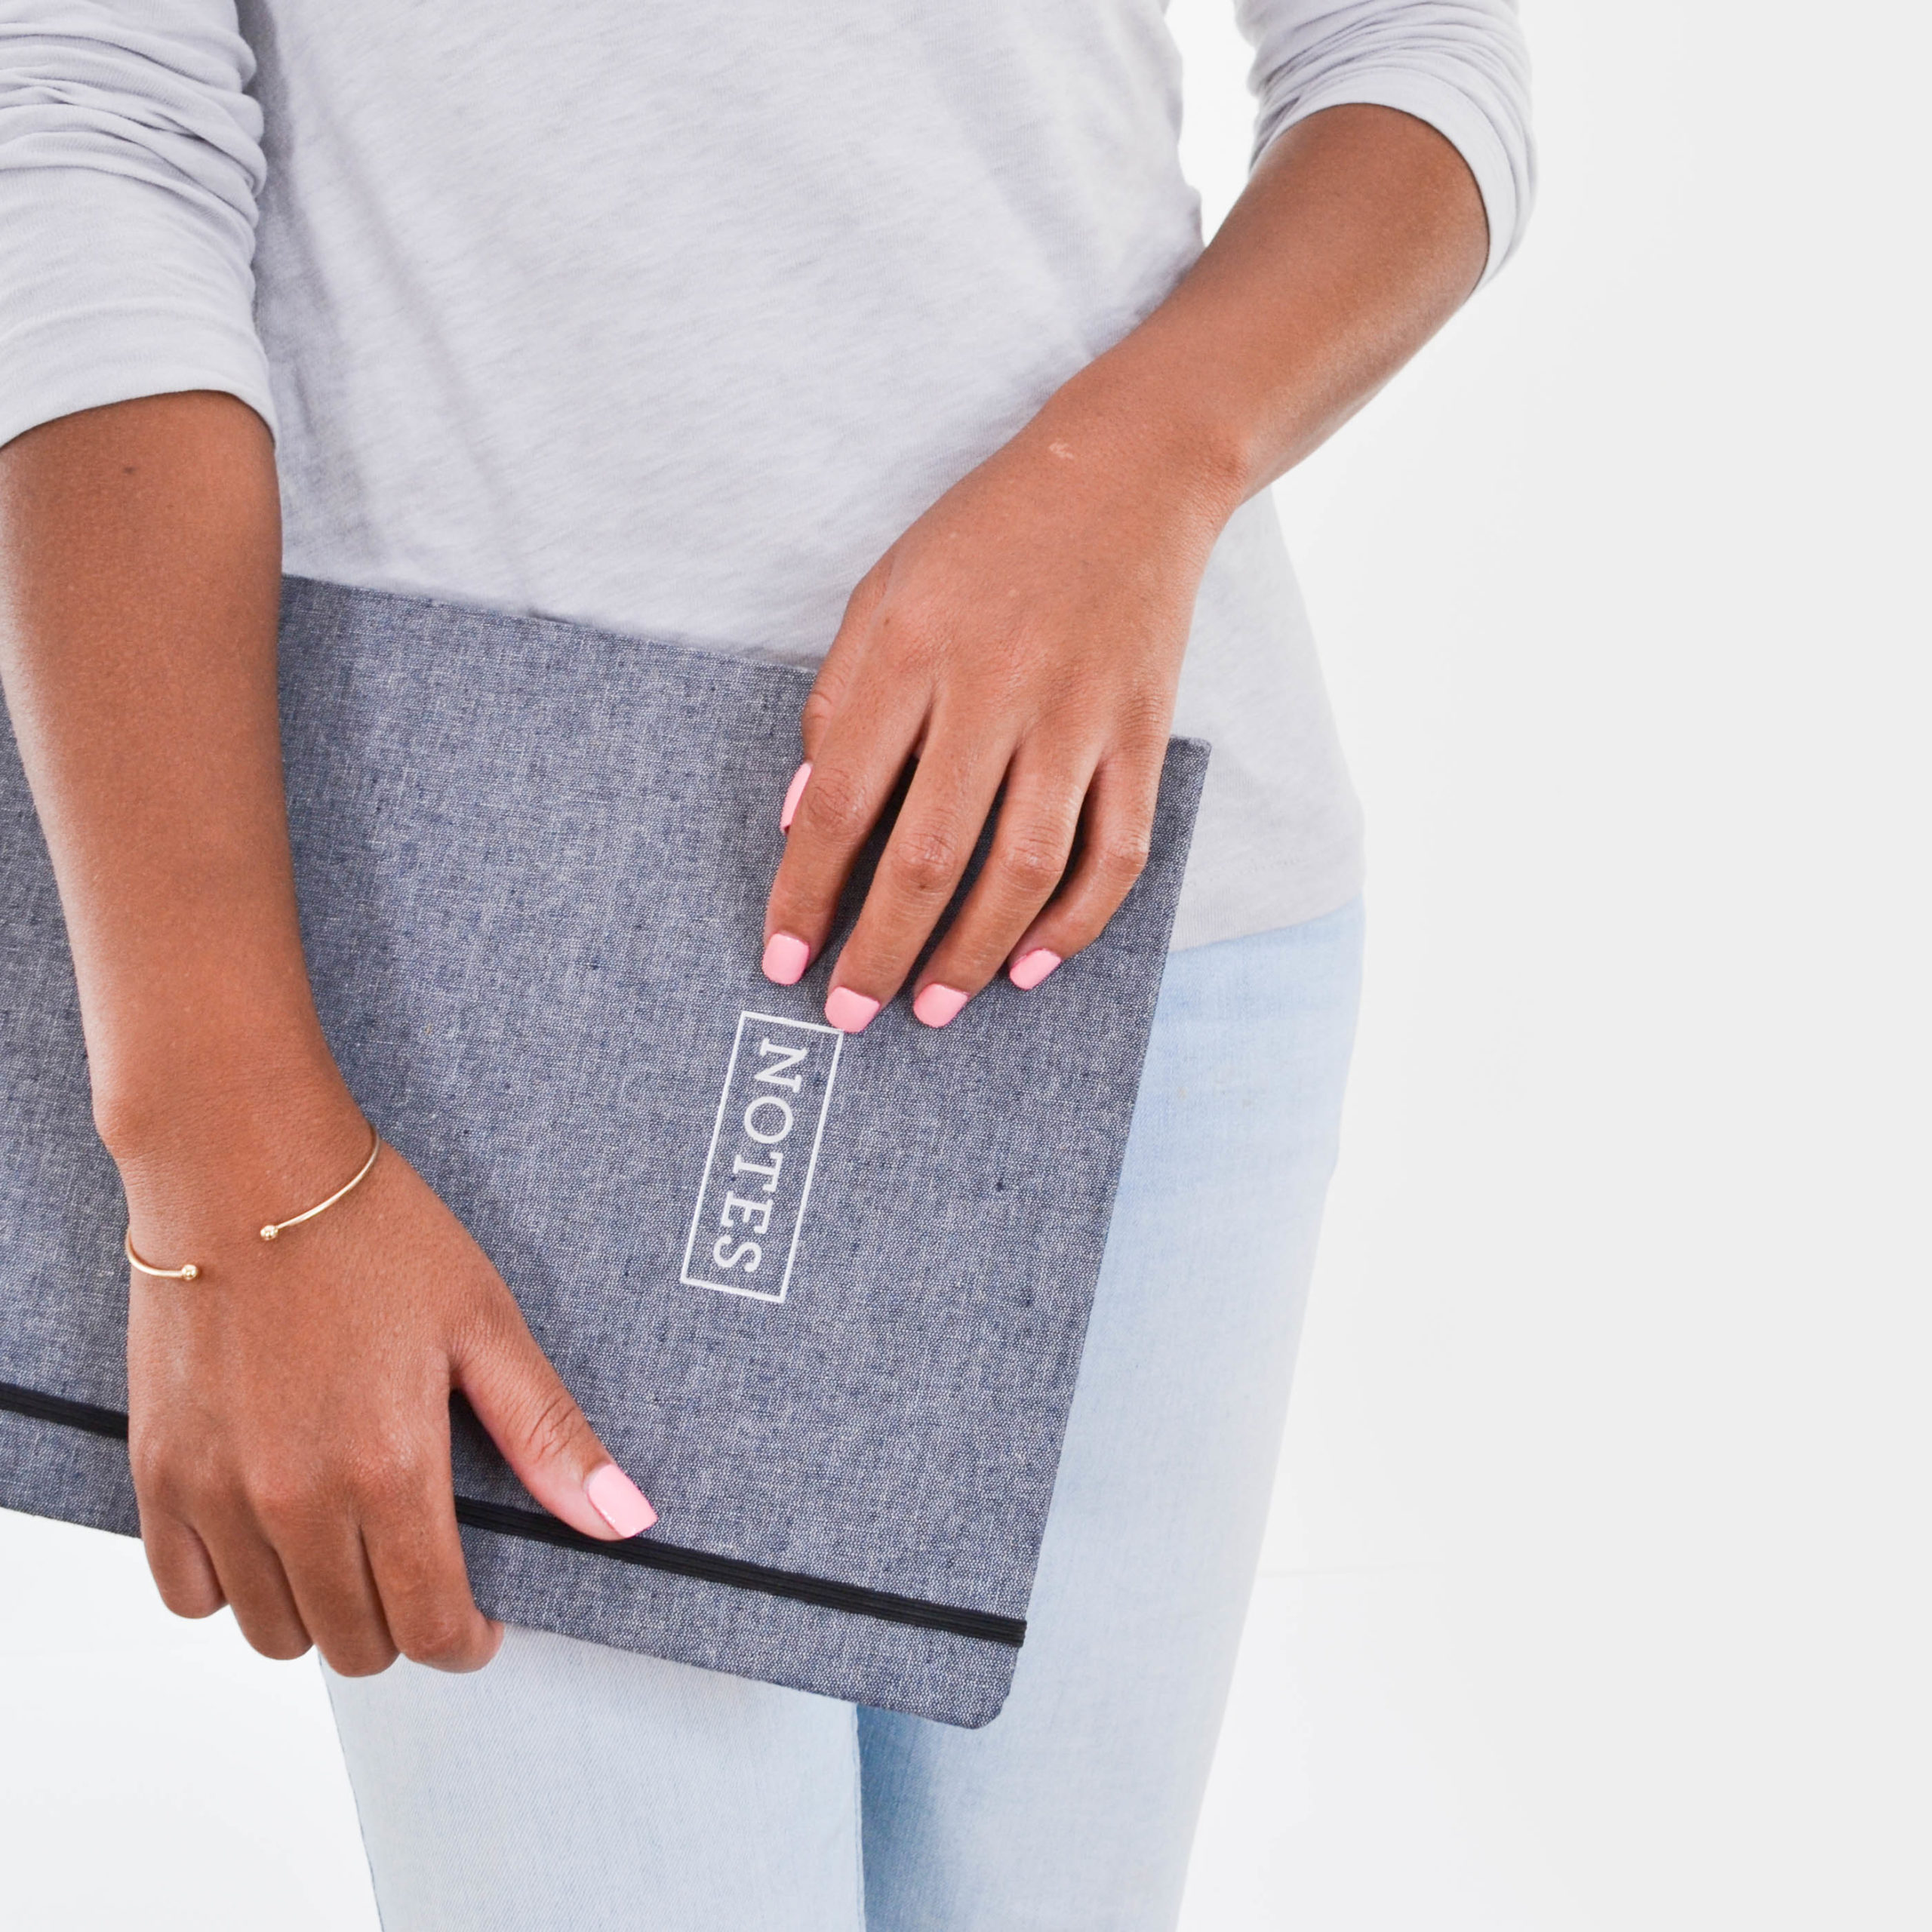 Women wearing a grey top and blue trousers holding a grey 'notes' book